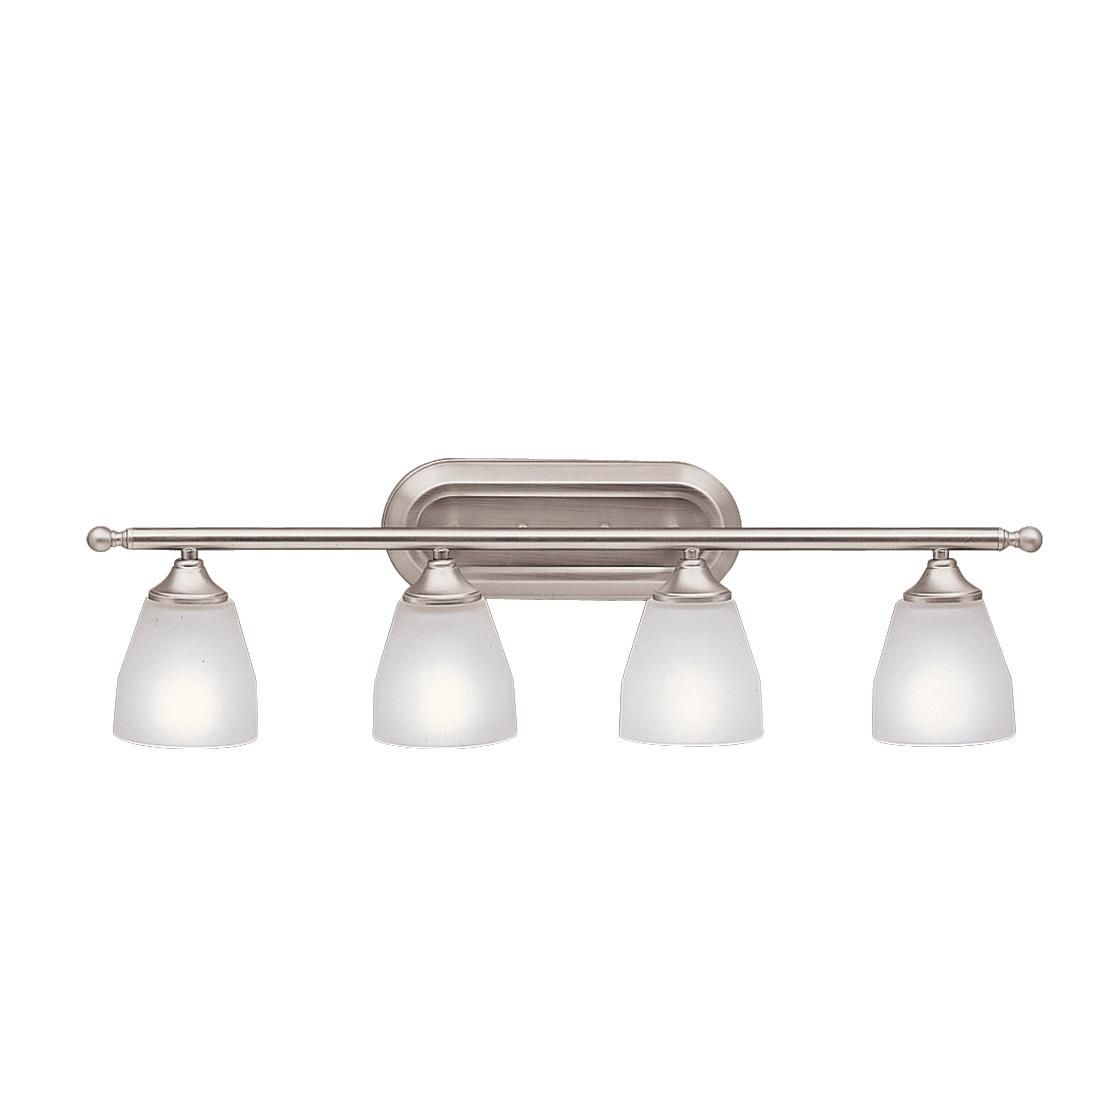 List Of Pinterest Brushed Nickel Light Fixtures Bathroom Ceiling 12 Foot Swag Kit Chain By Westinghouse Electric New Bath 4lt